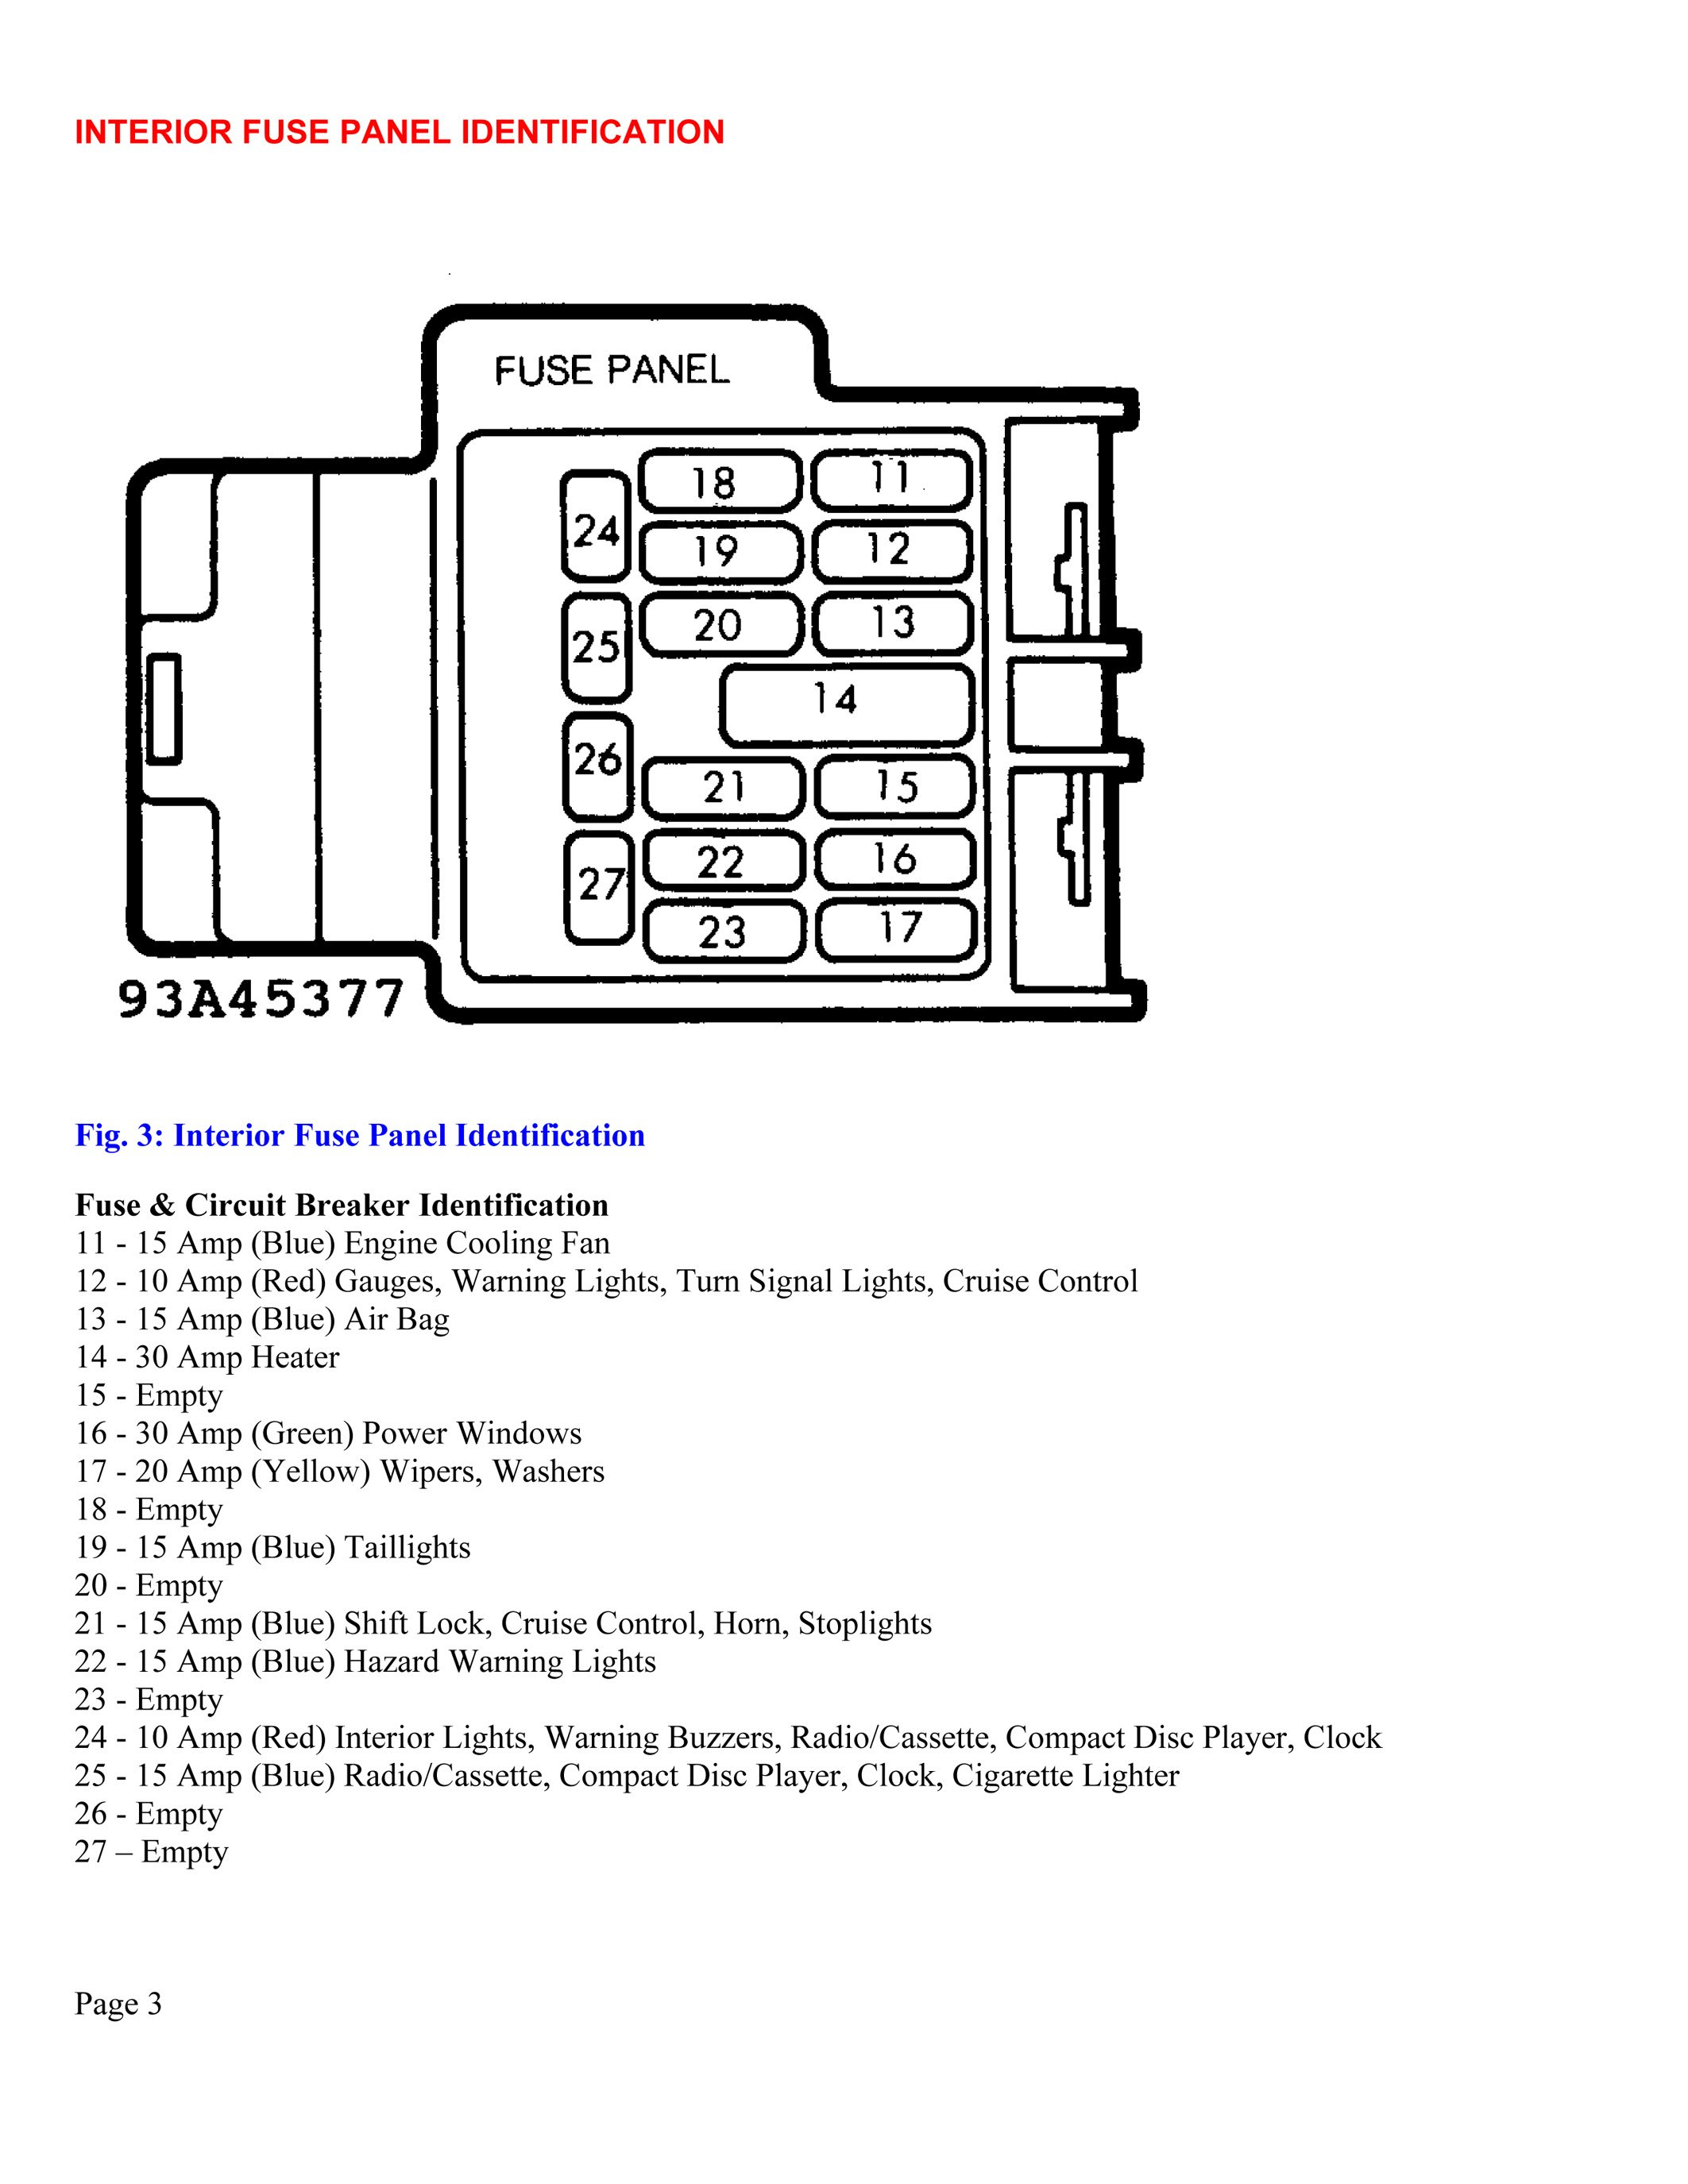 1991 Mazda Navajo Fuse Box Diagram 2006 Audi Quattro A4 2 0 Fuse Diagram Bege Wiring Diagram